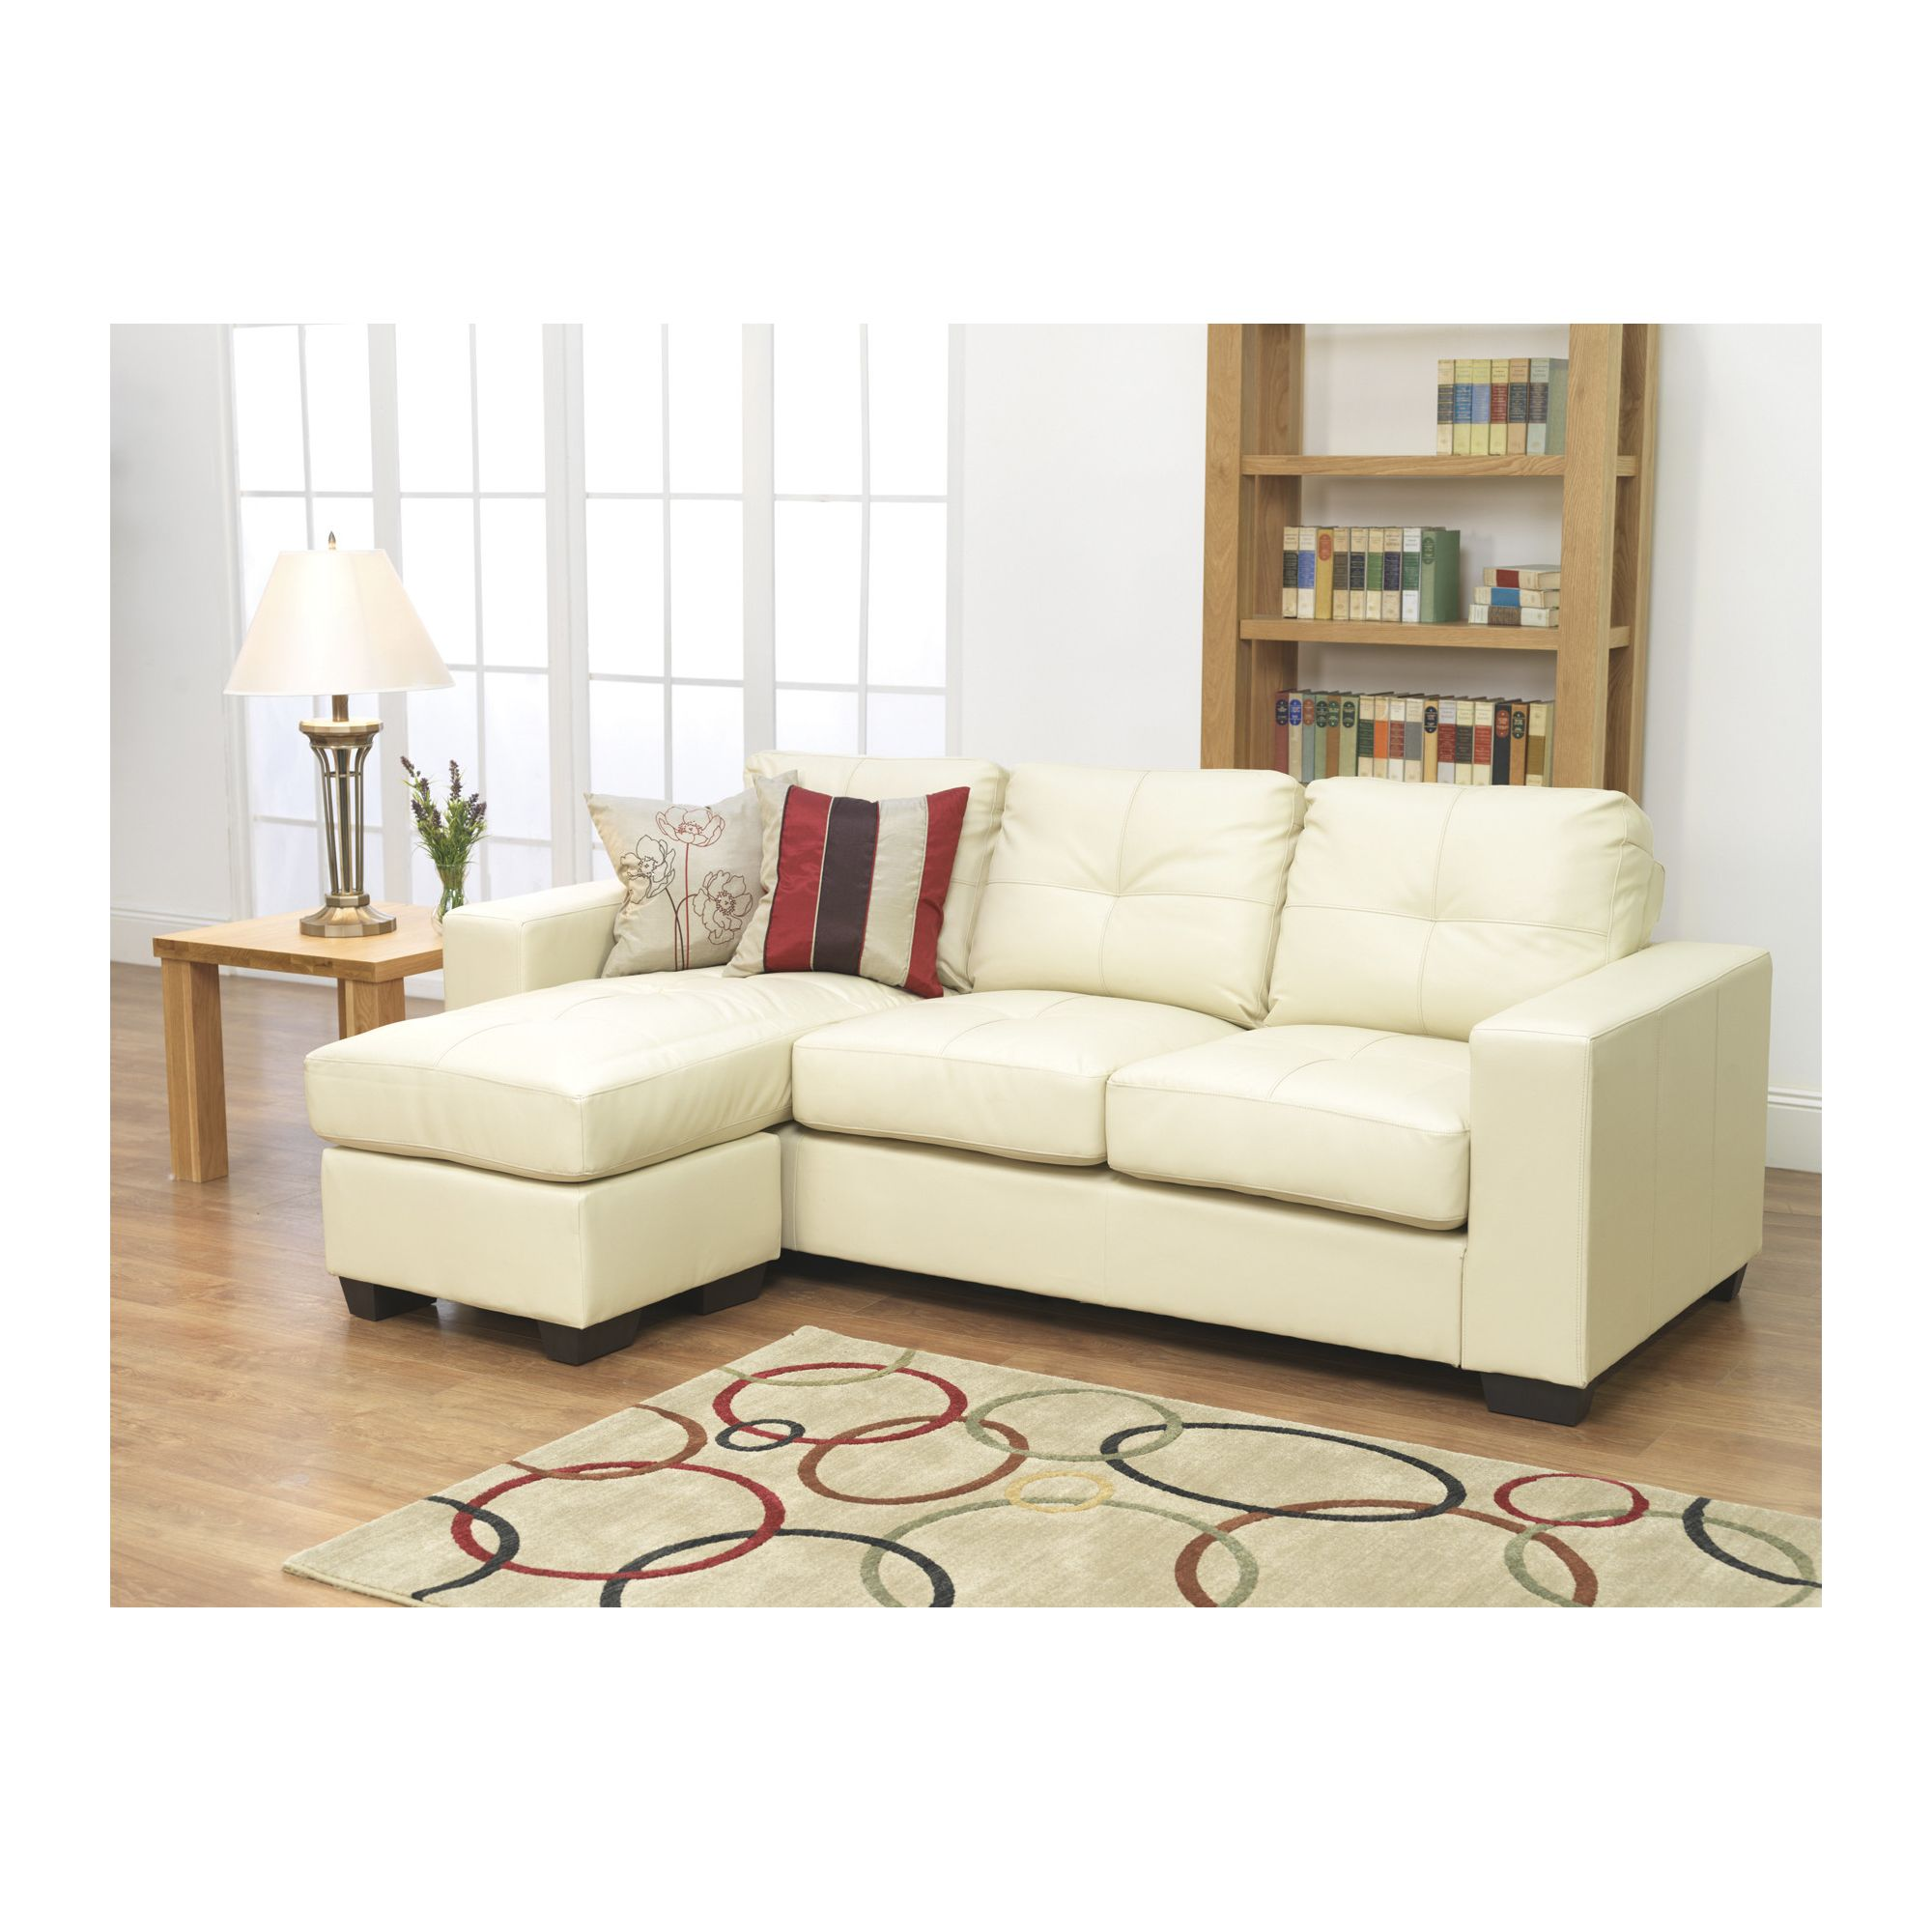 Furniture Link Gemona L Sofa in Ivory at Tesco Direct